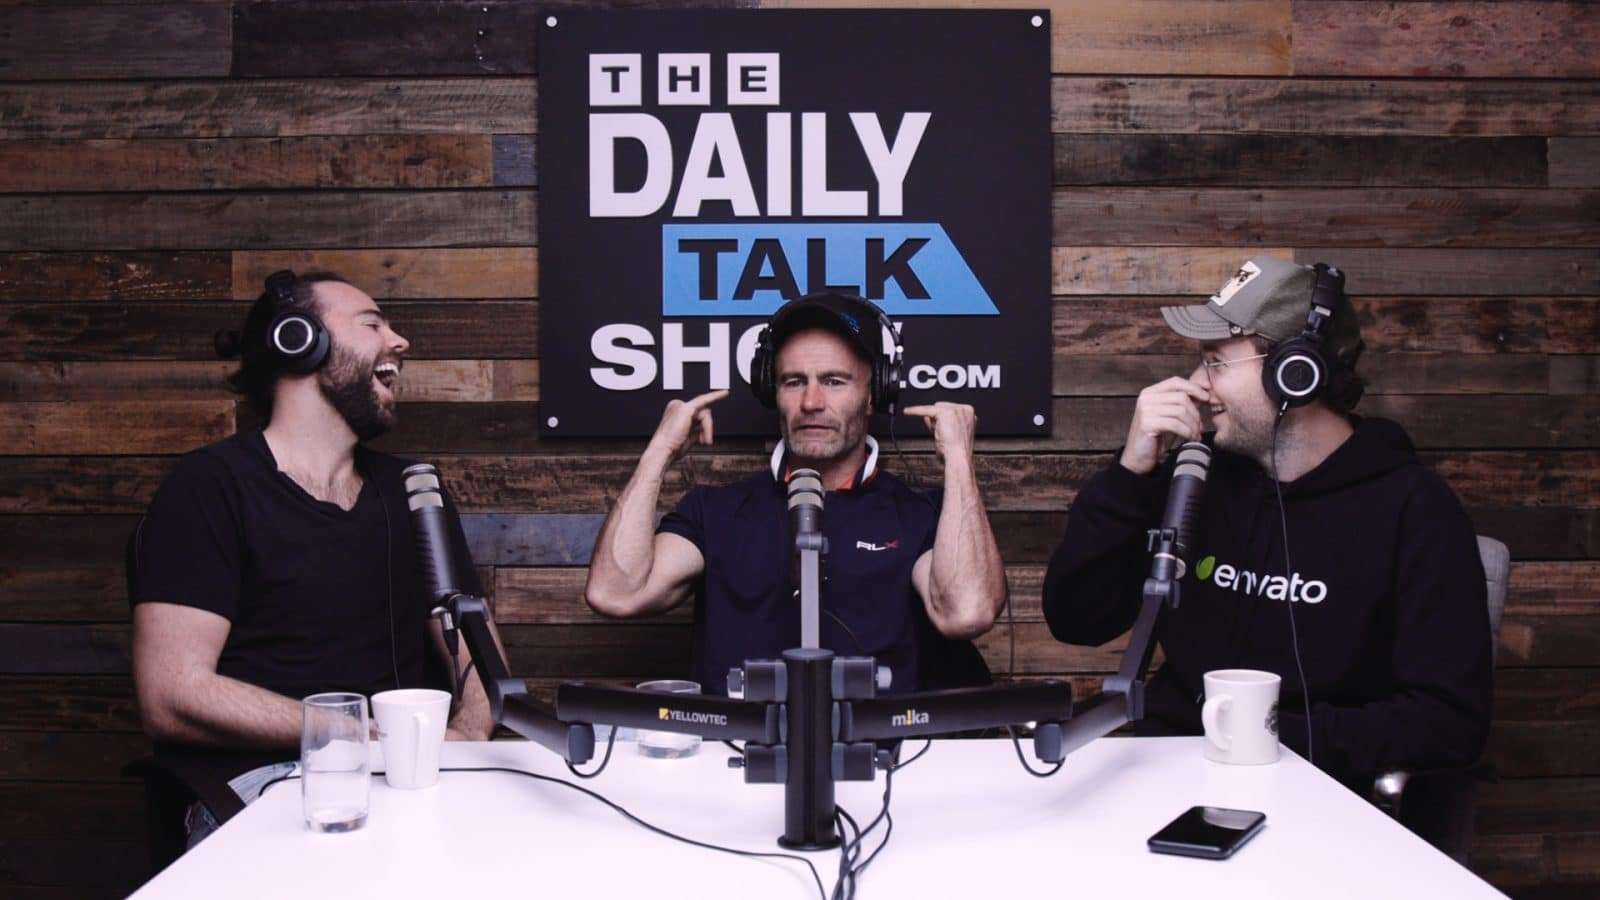 The-Daily-Talk-Show-418